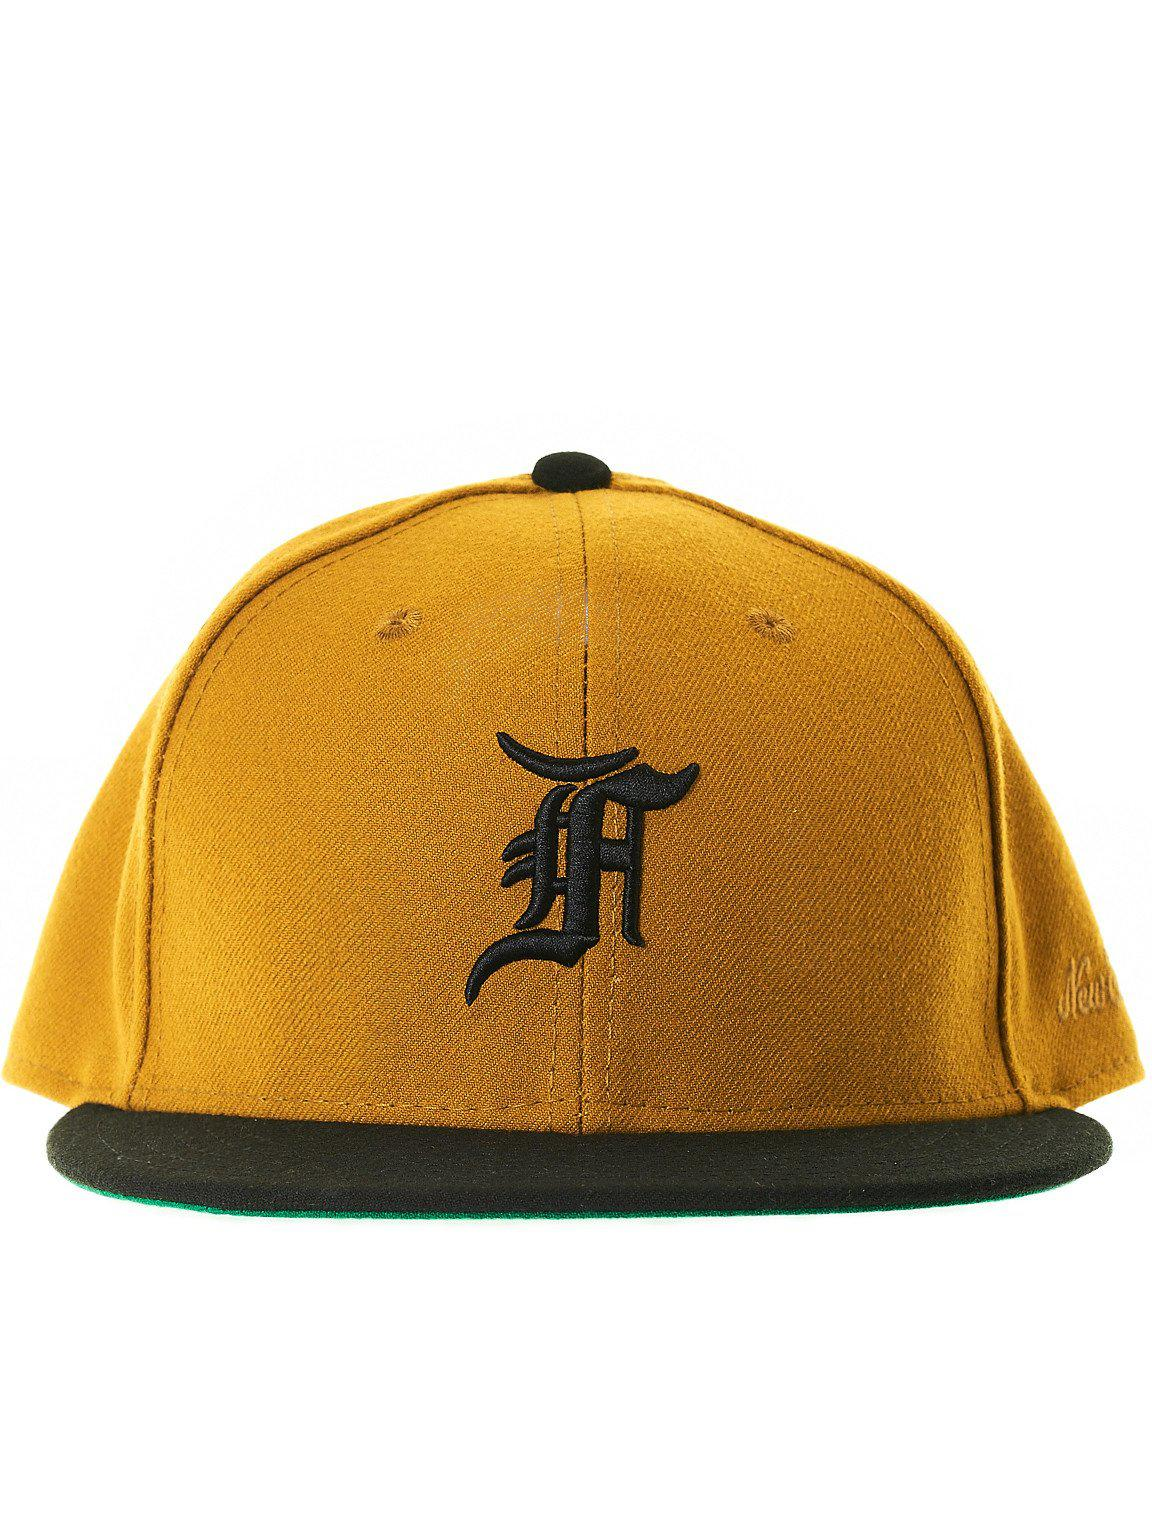 823d84febe4 Lyst - Fear Of God New Era X Fitted Cap in Metallic for Men